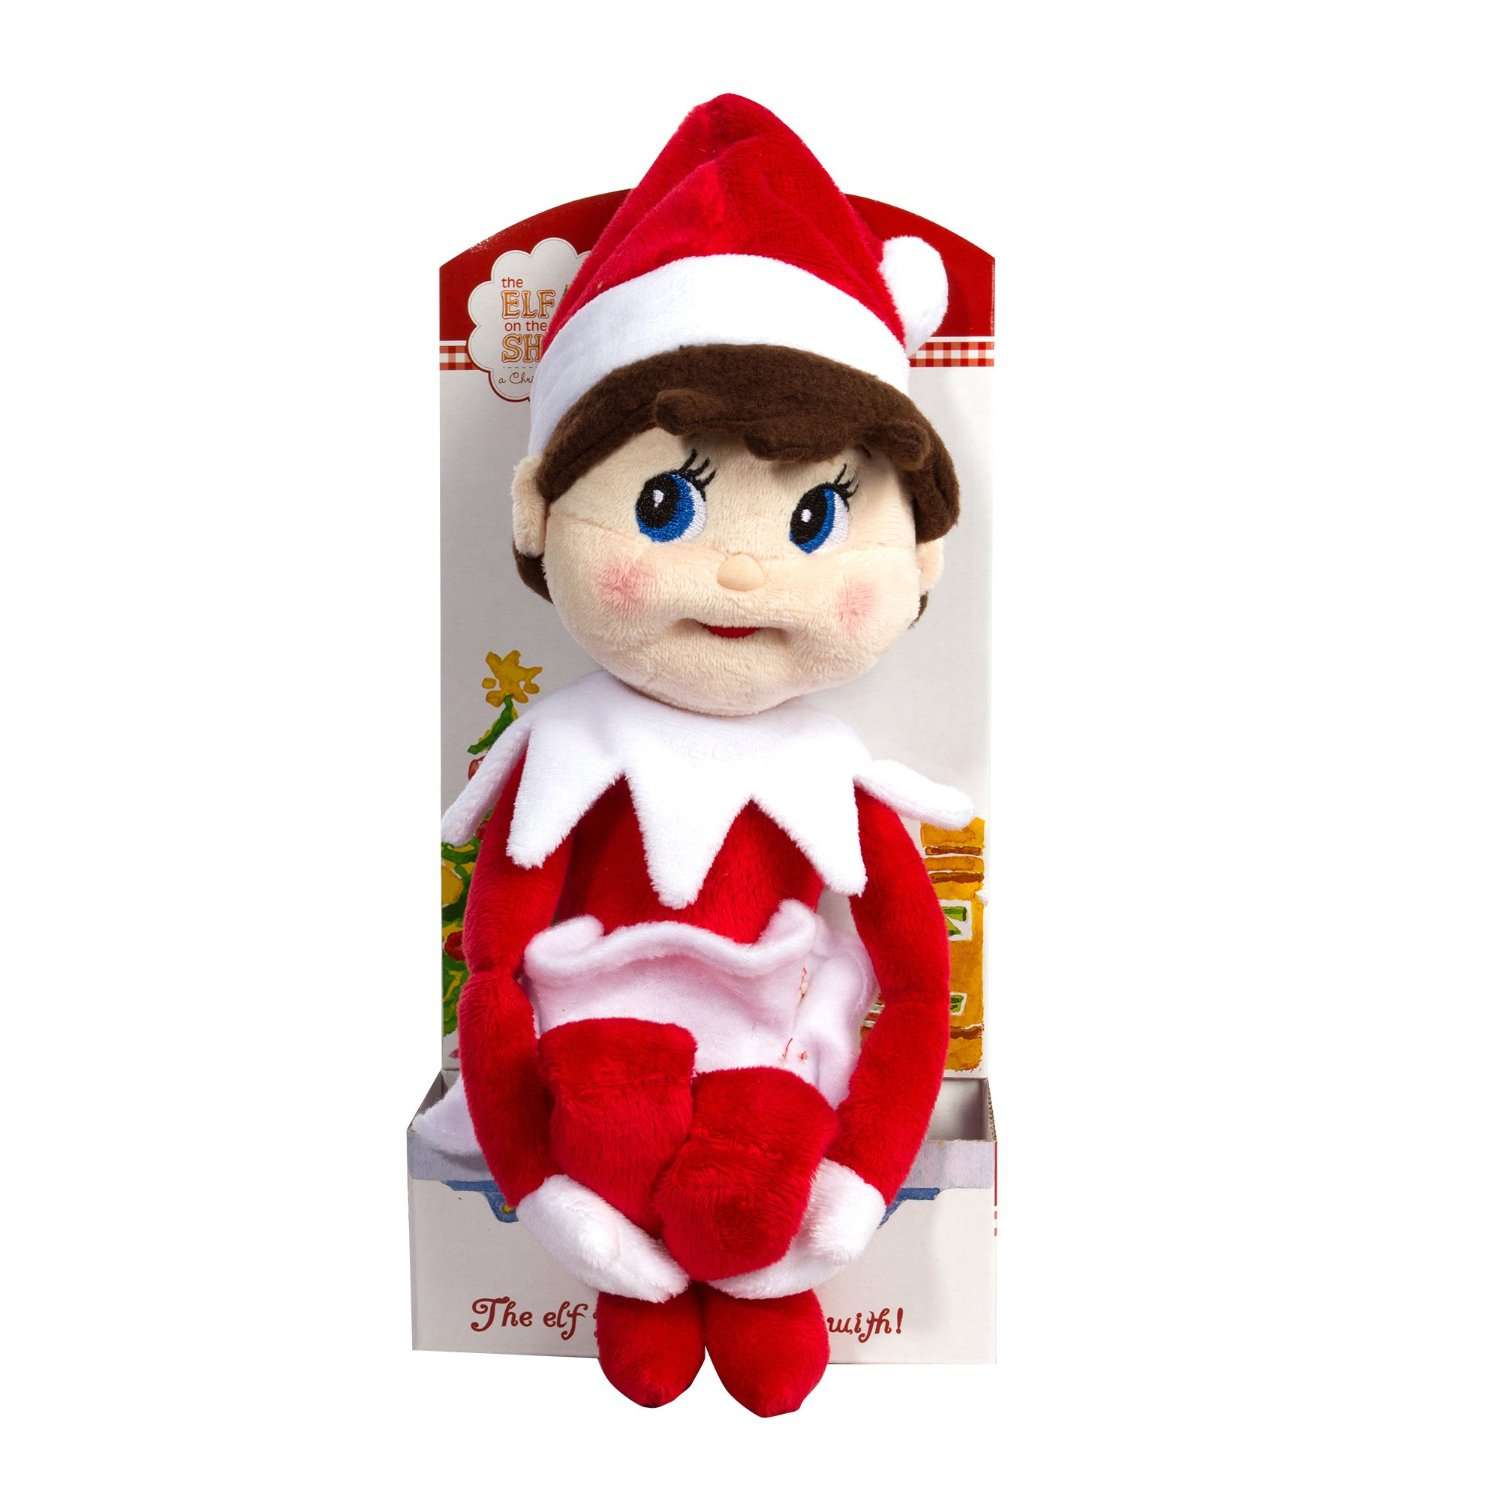 Elf on the Shelf Plush Doll only shipped